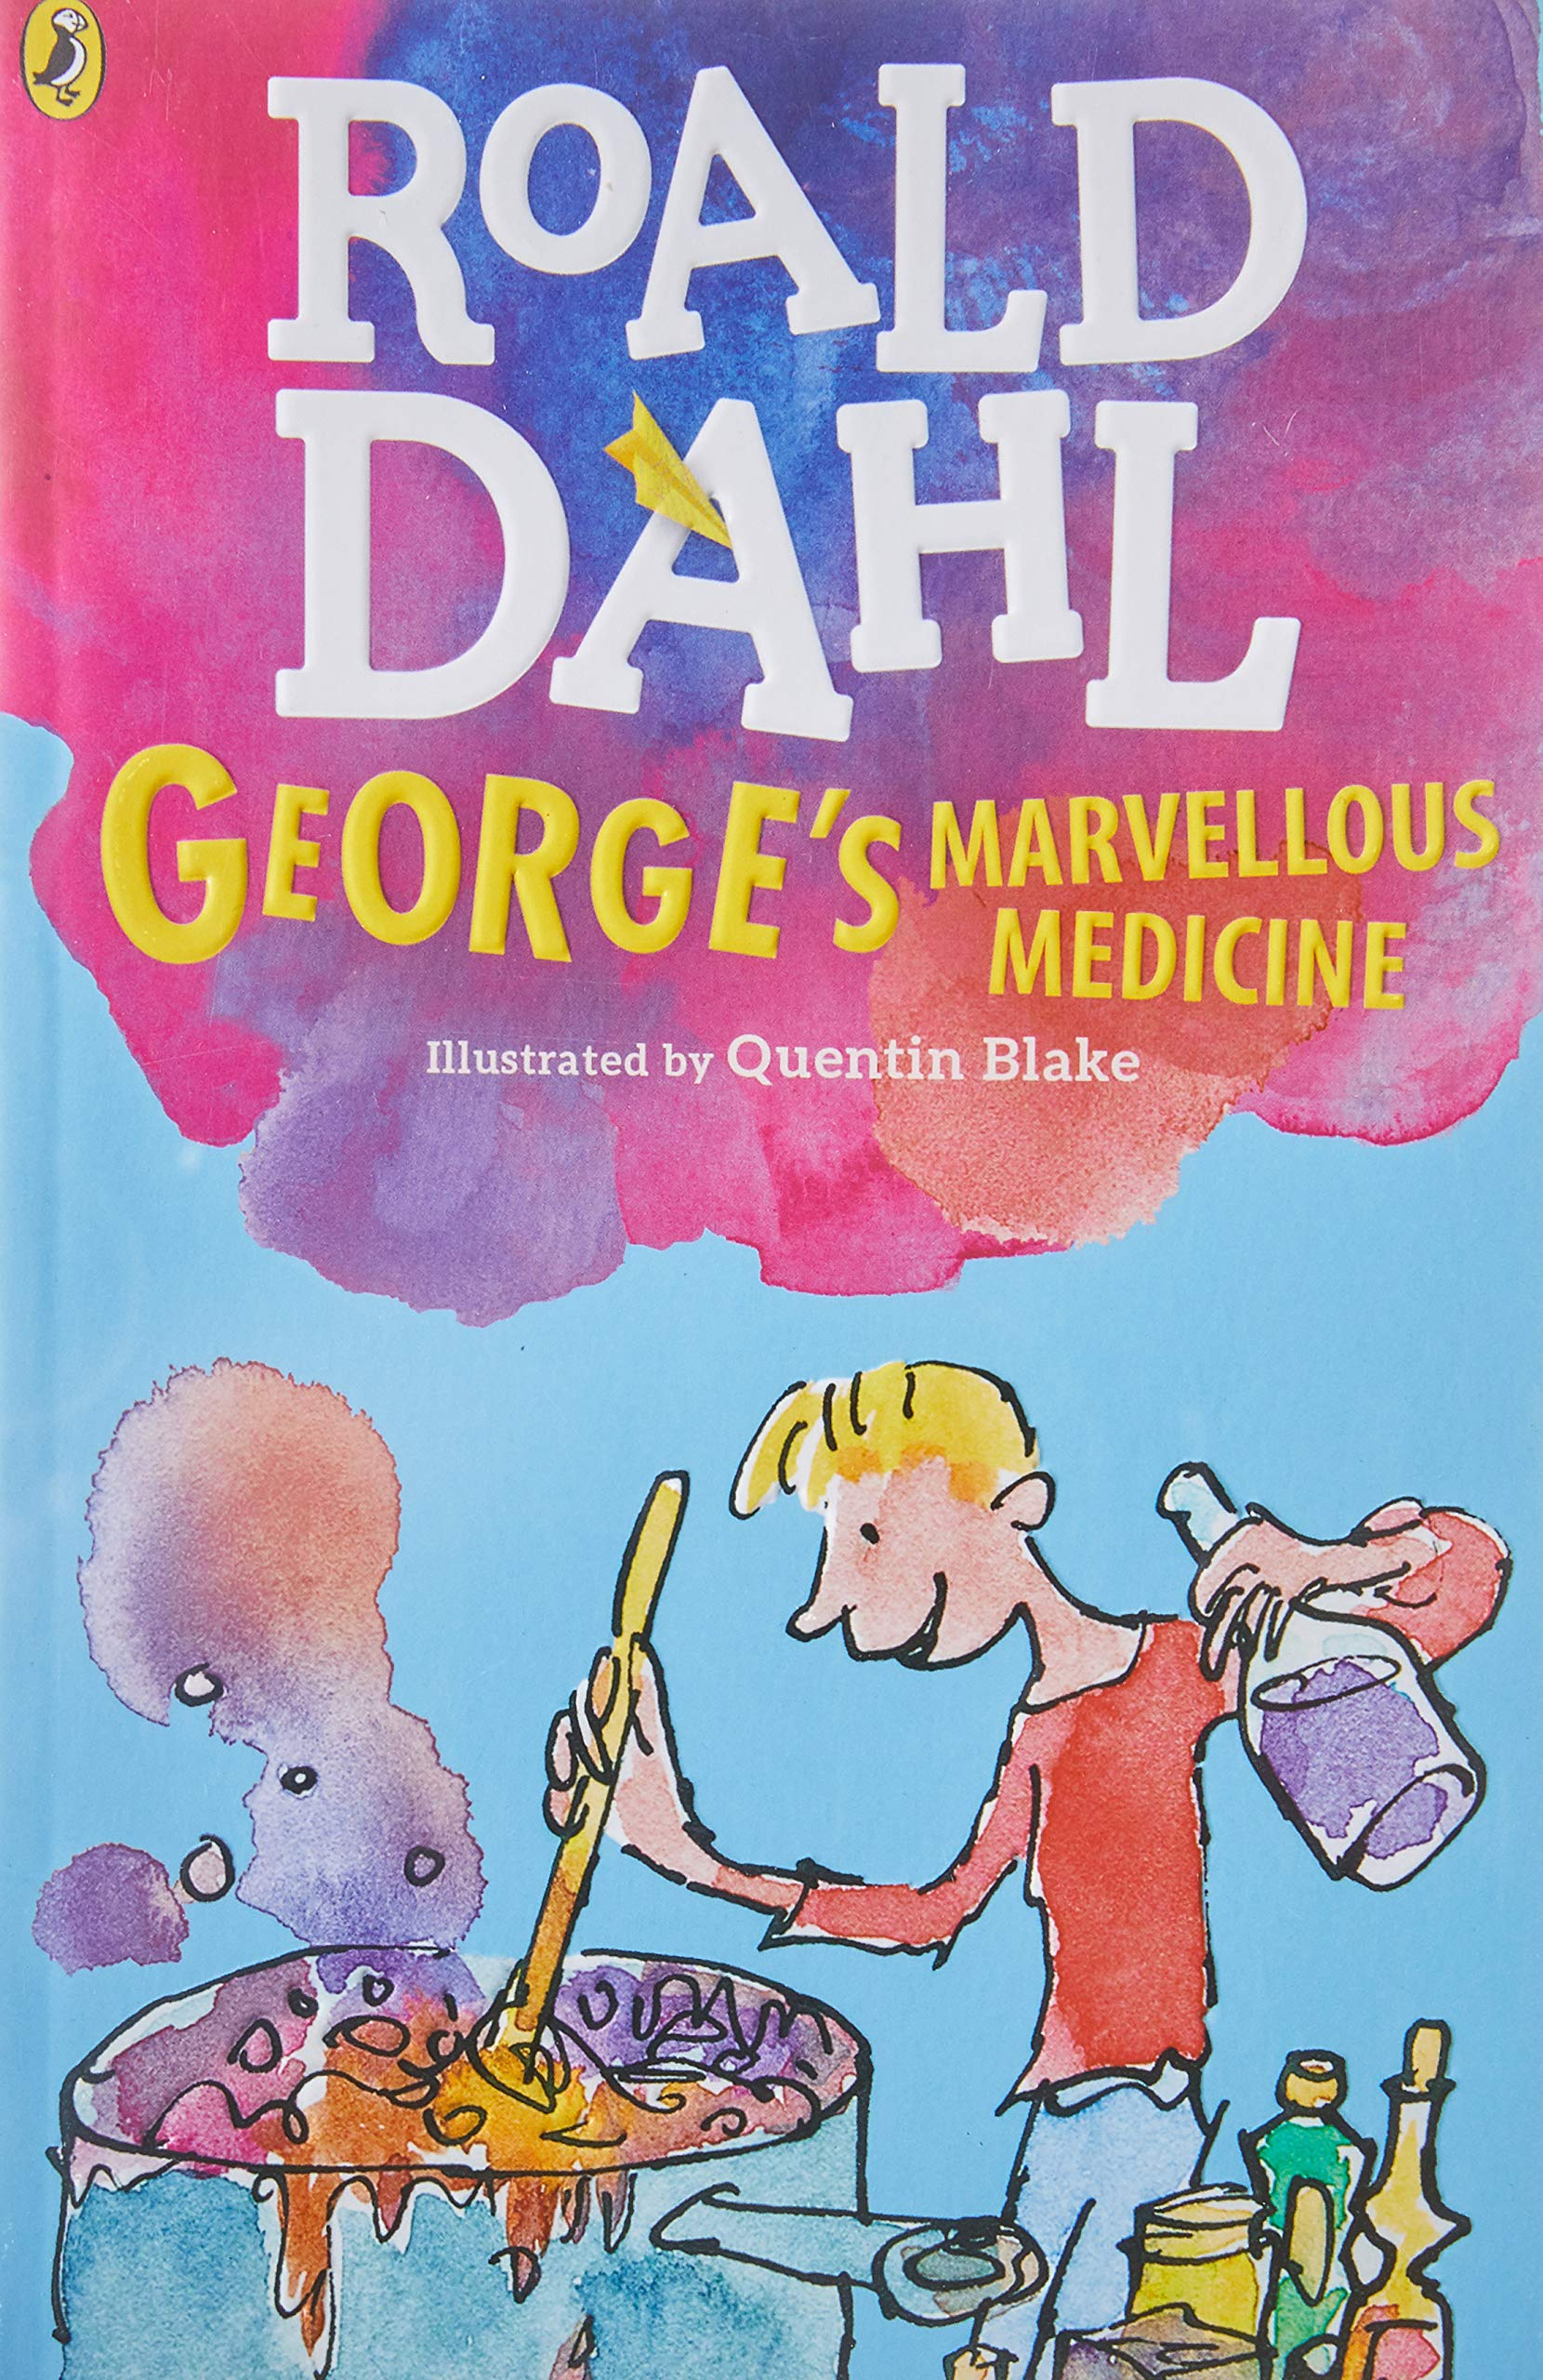 George's Marvellous Medicine (Dahl Fiction): Amazon.co.uk: Dahl ...